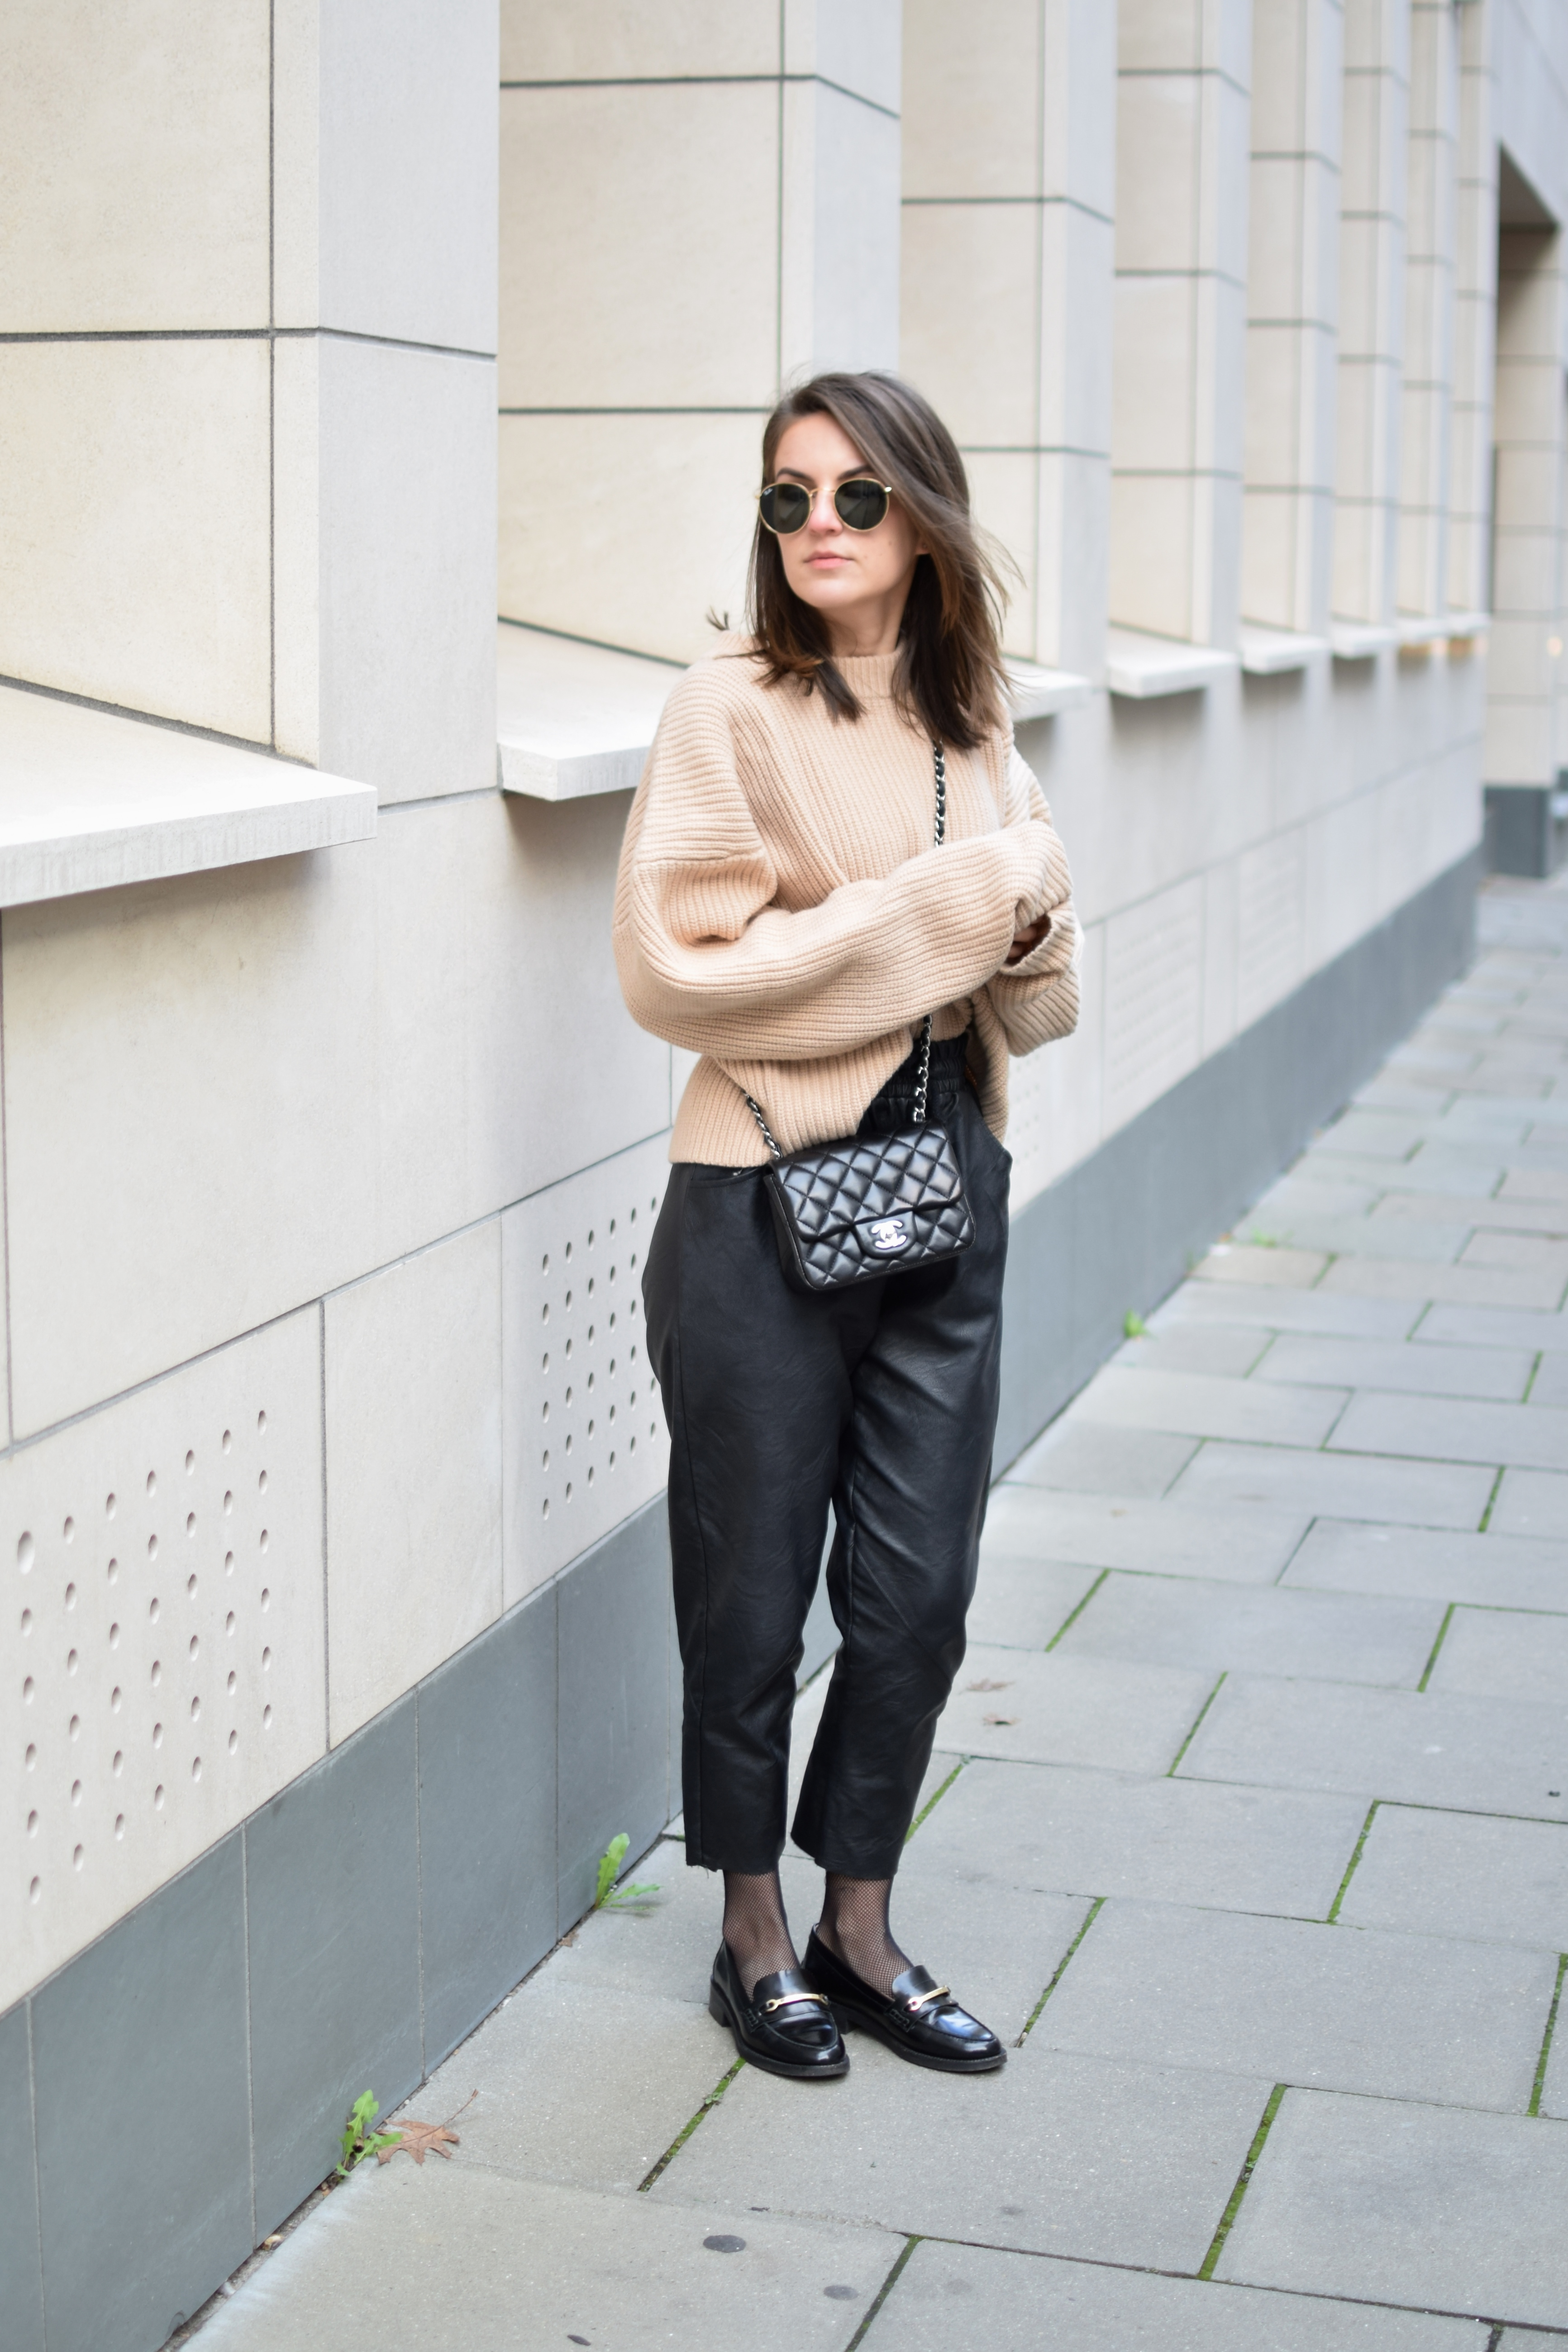 d49179061afb26 leather pants chanel bag black nude fall - Shoppisticated